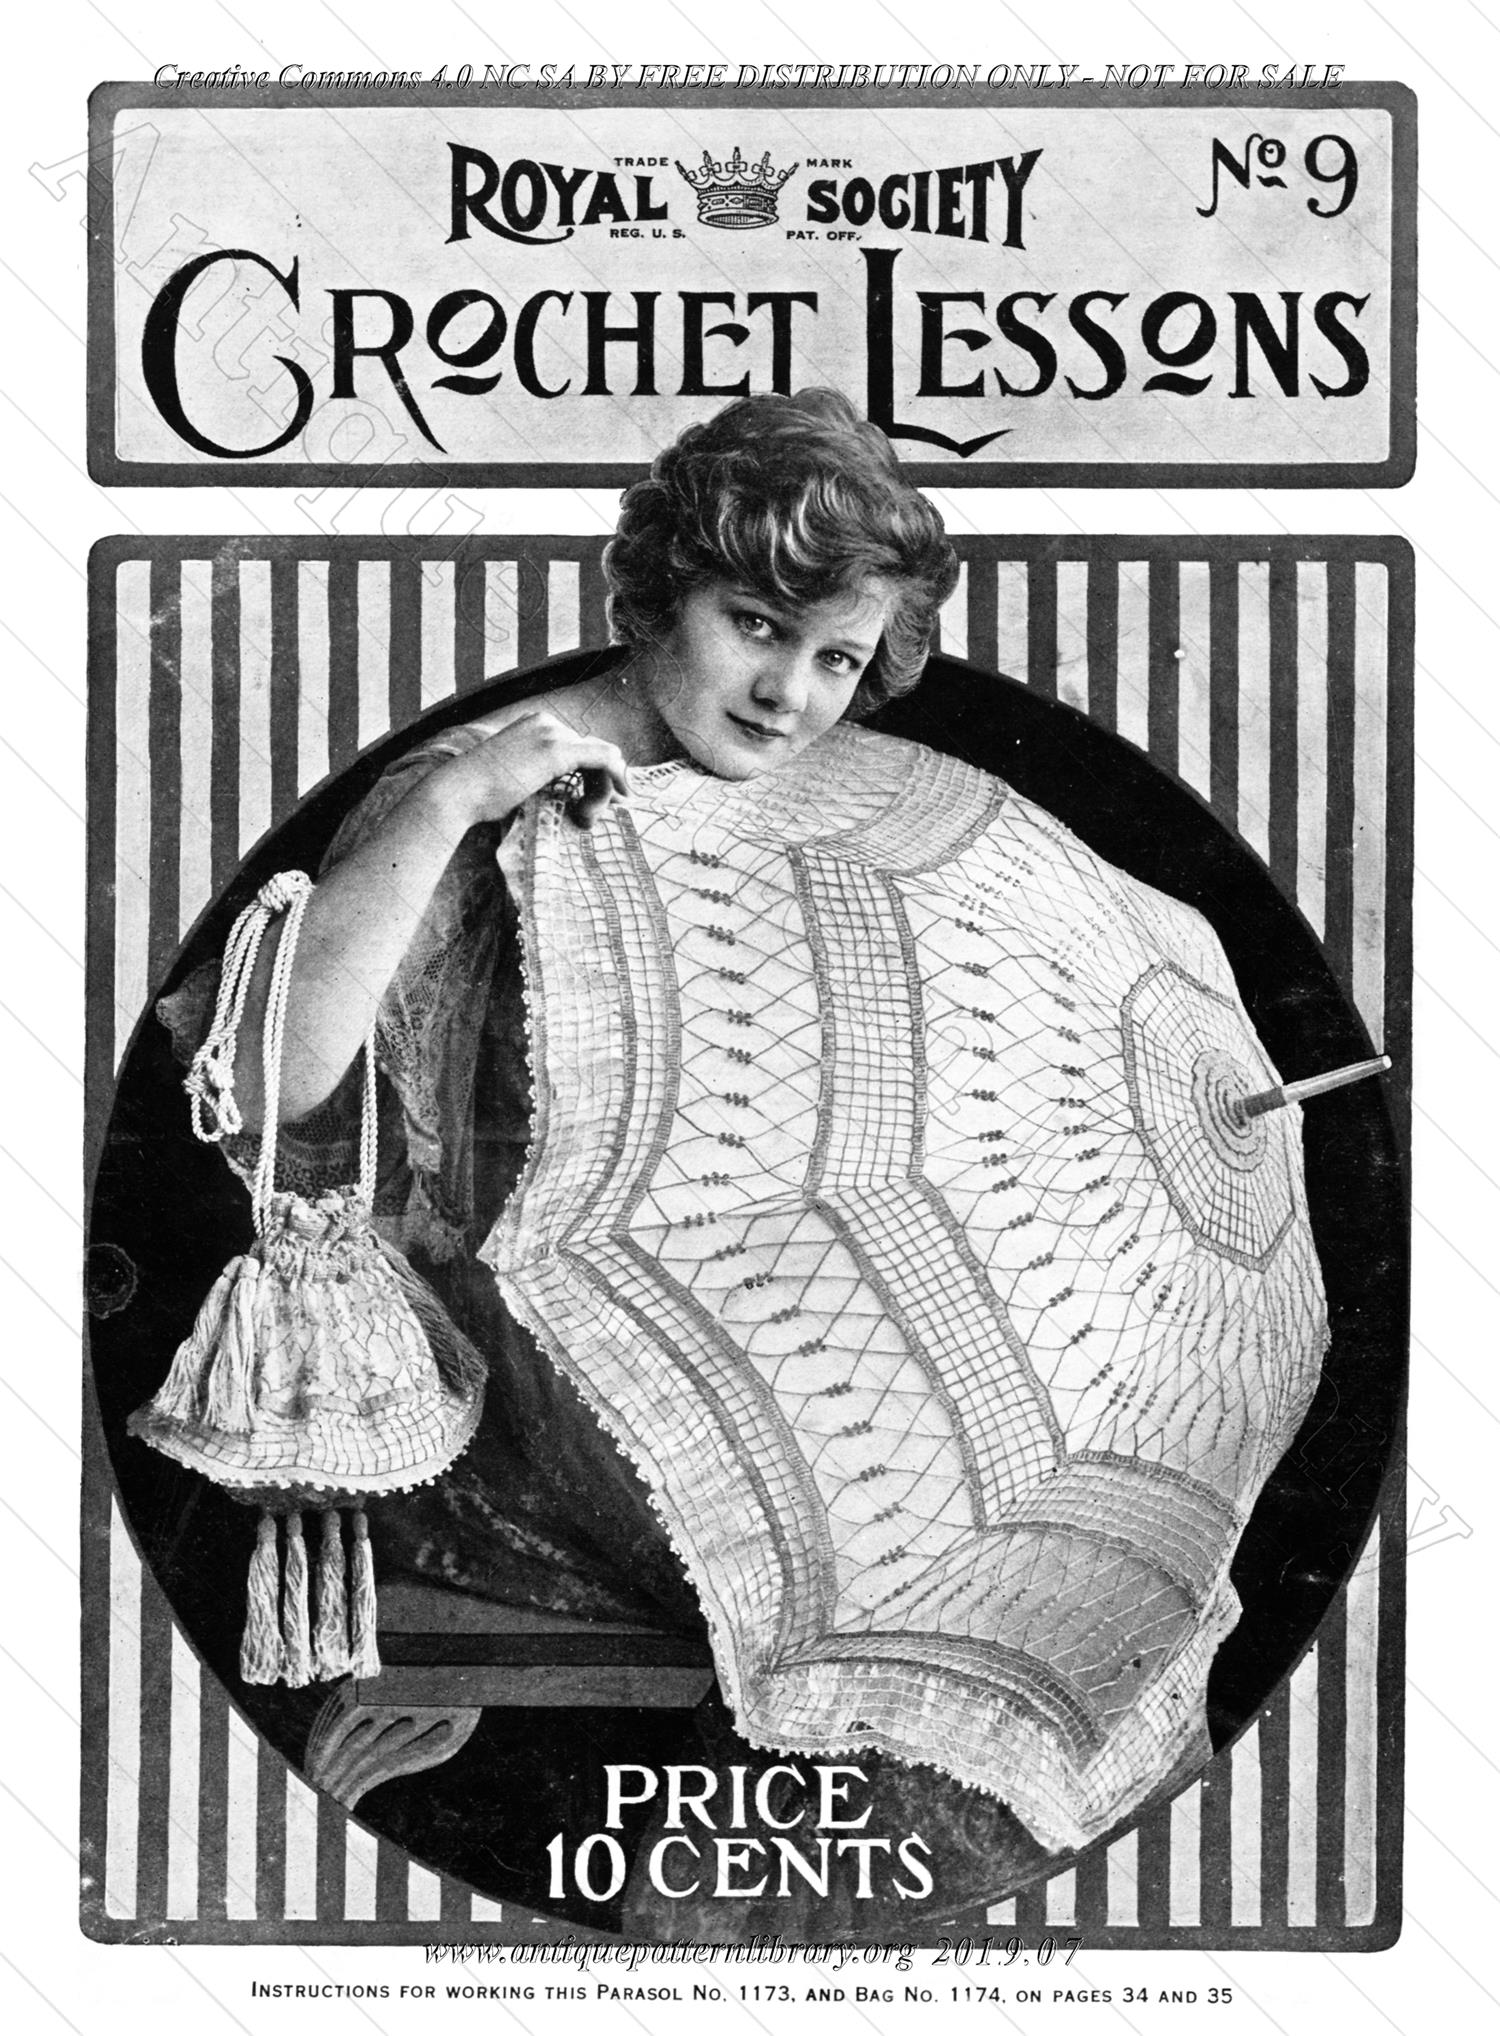 D-SW013 Royal Society Crochet Lessons No. 9